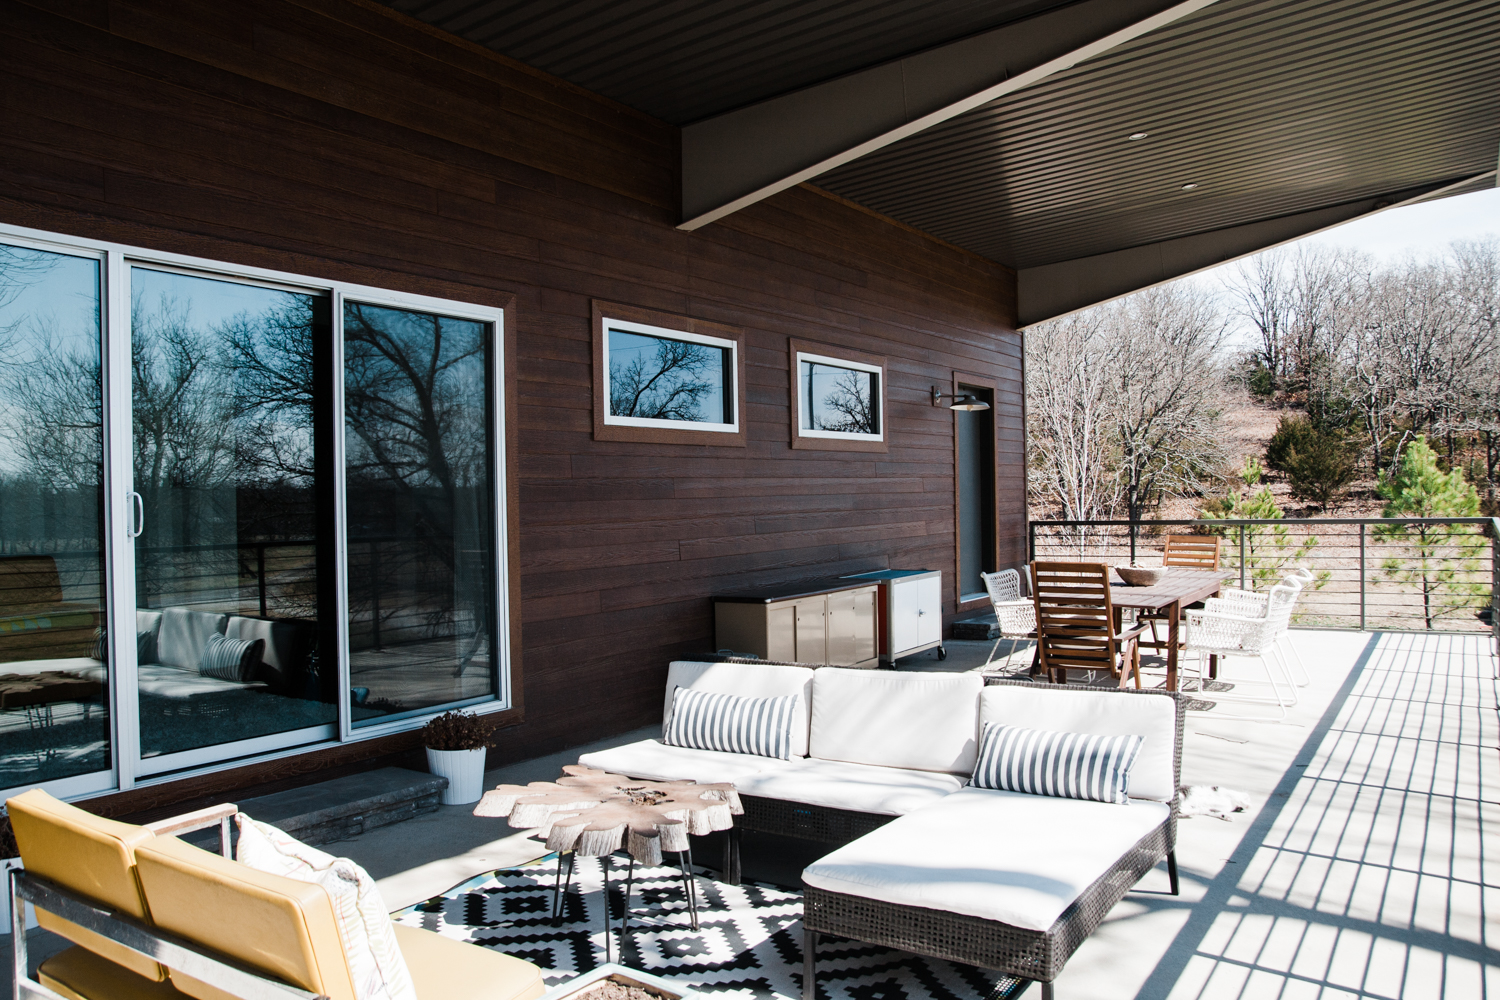 The family loves using the second story covered deck– even (or especially) on rainy days.